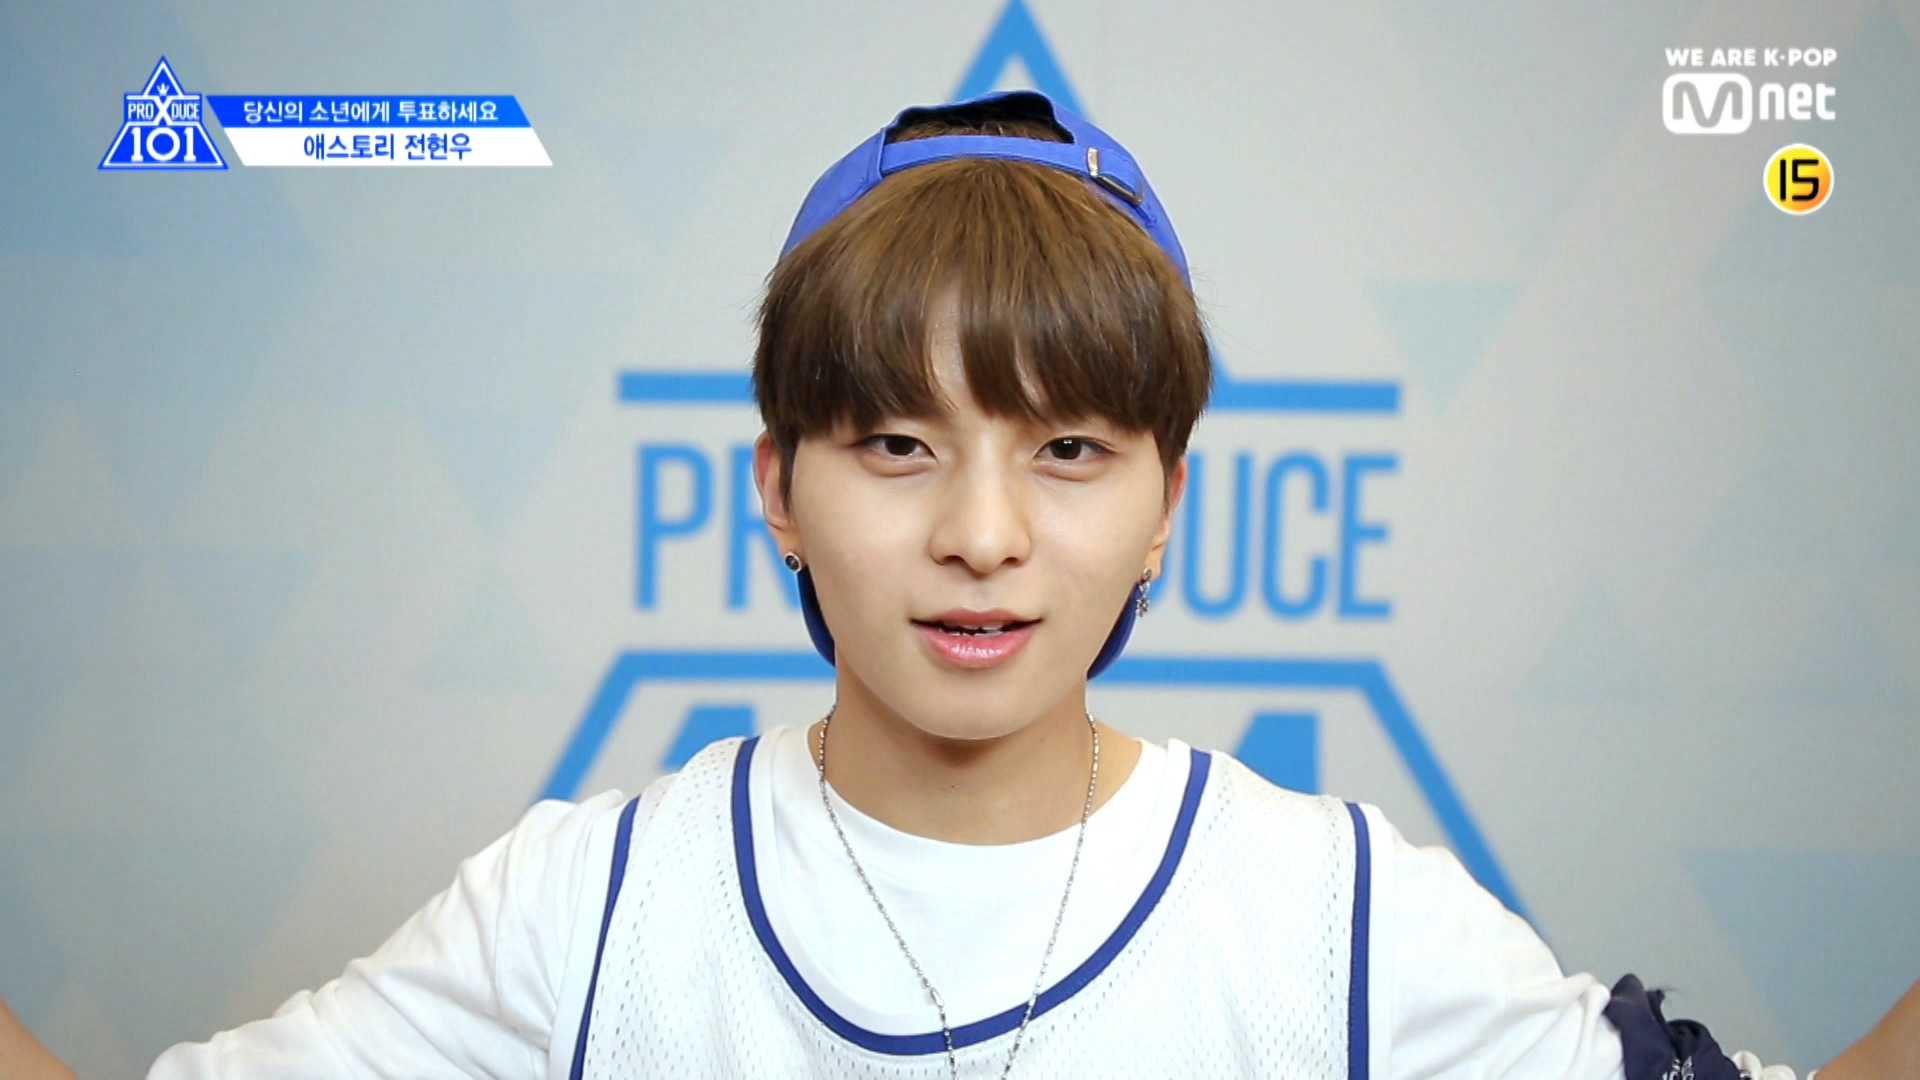 [PRODUCE X 101] EYE CONTACT CHALLENGE l JEON HYUN WOO(ASTORY)